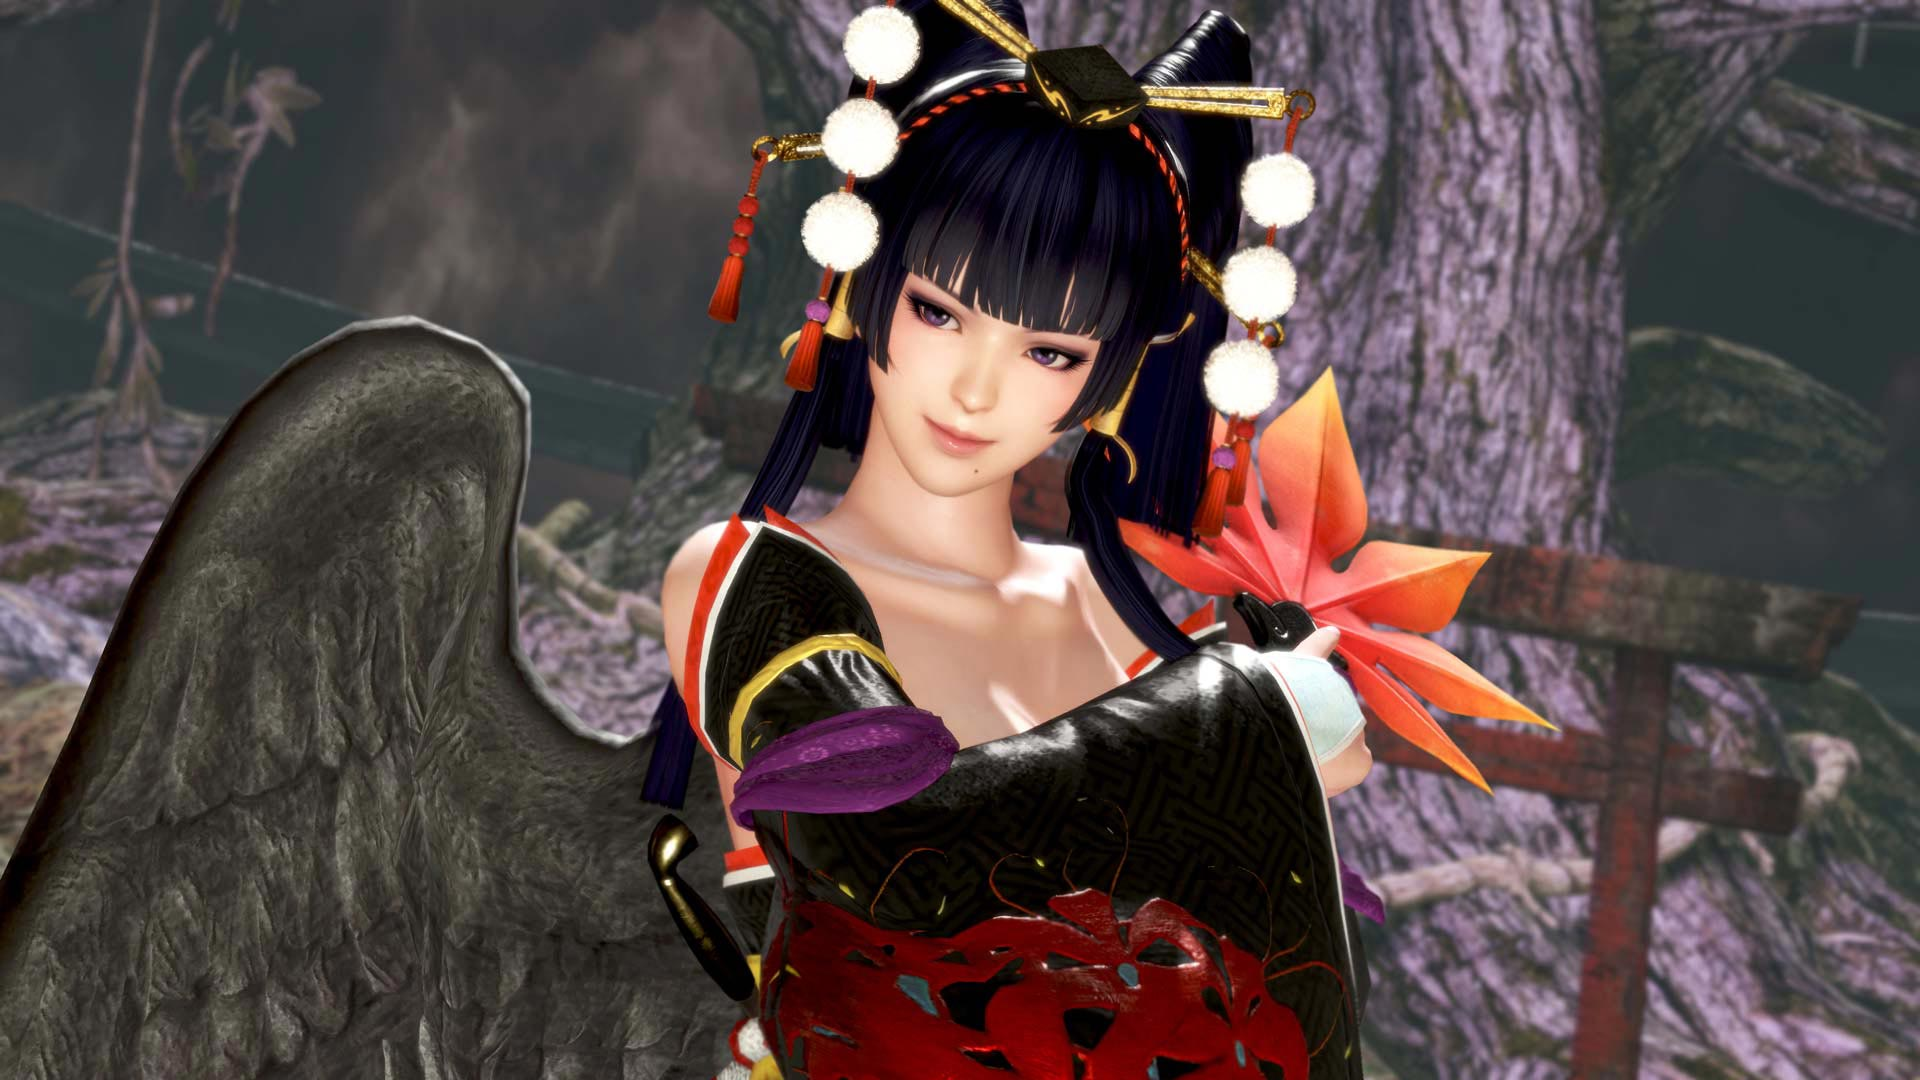 Dead or Alive 6 Nyotengu and Phase 4 1 out of 9 image gallery